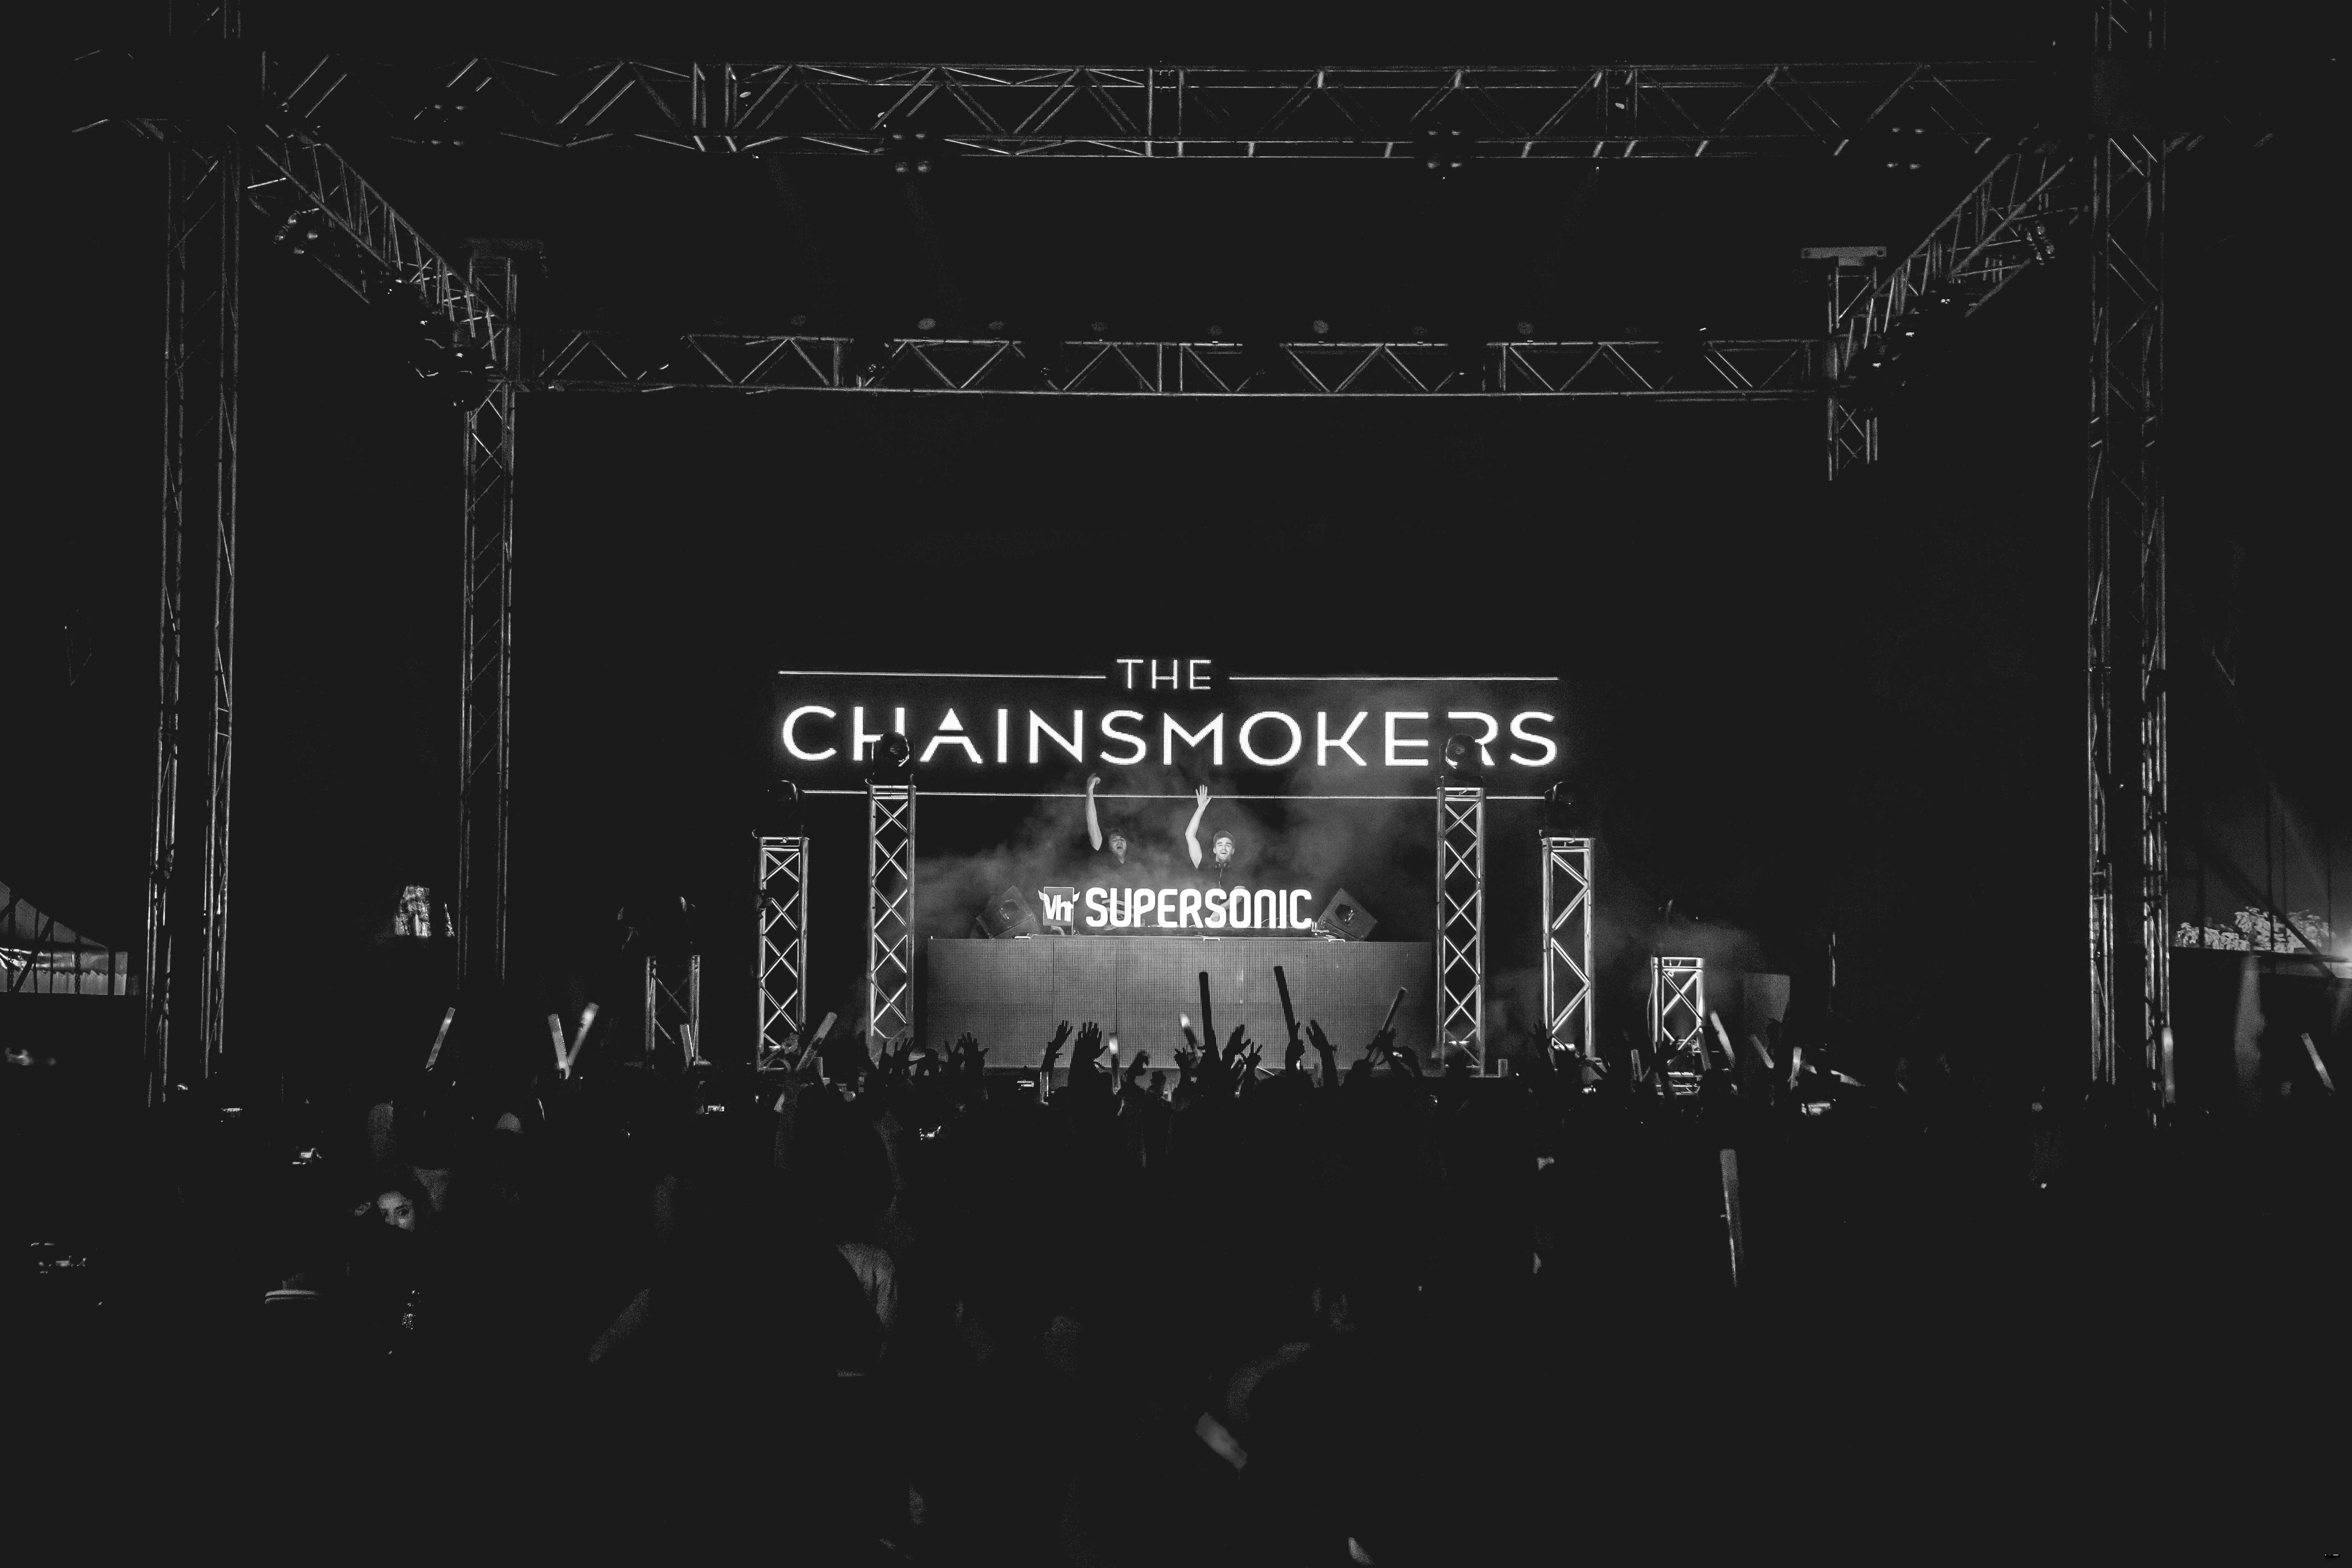 The Chainsmokers Wallpapers Images Photos Pictures Backgrounds 5642x3761